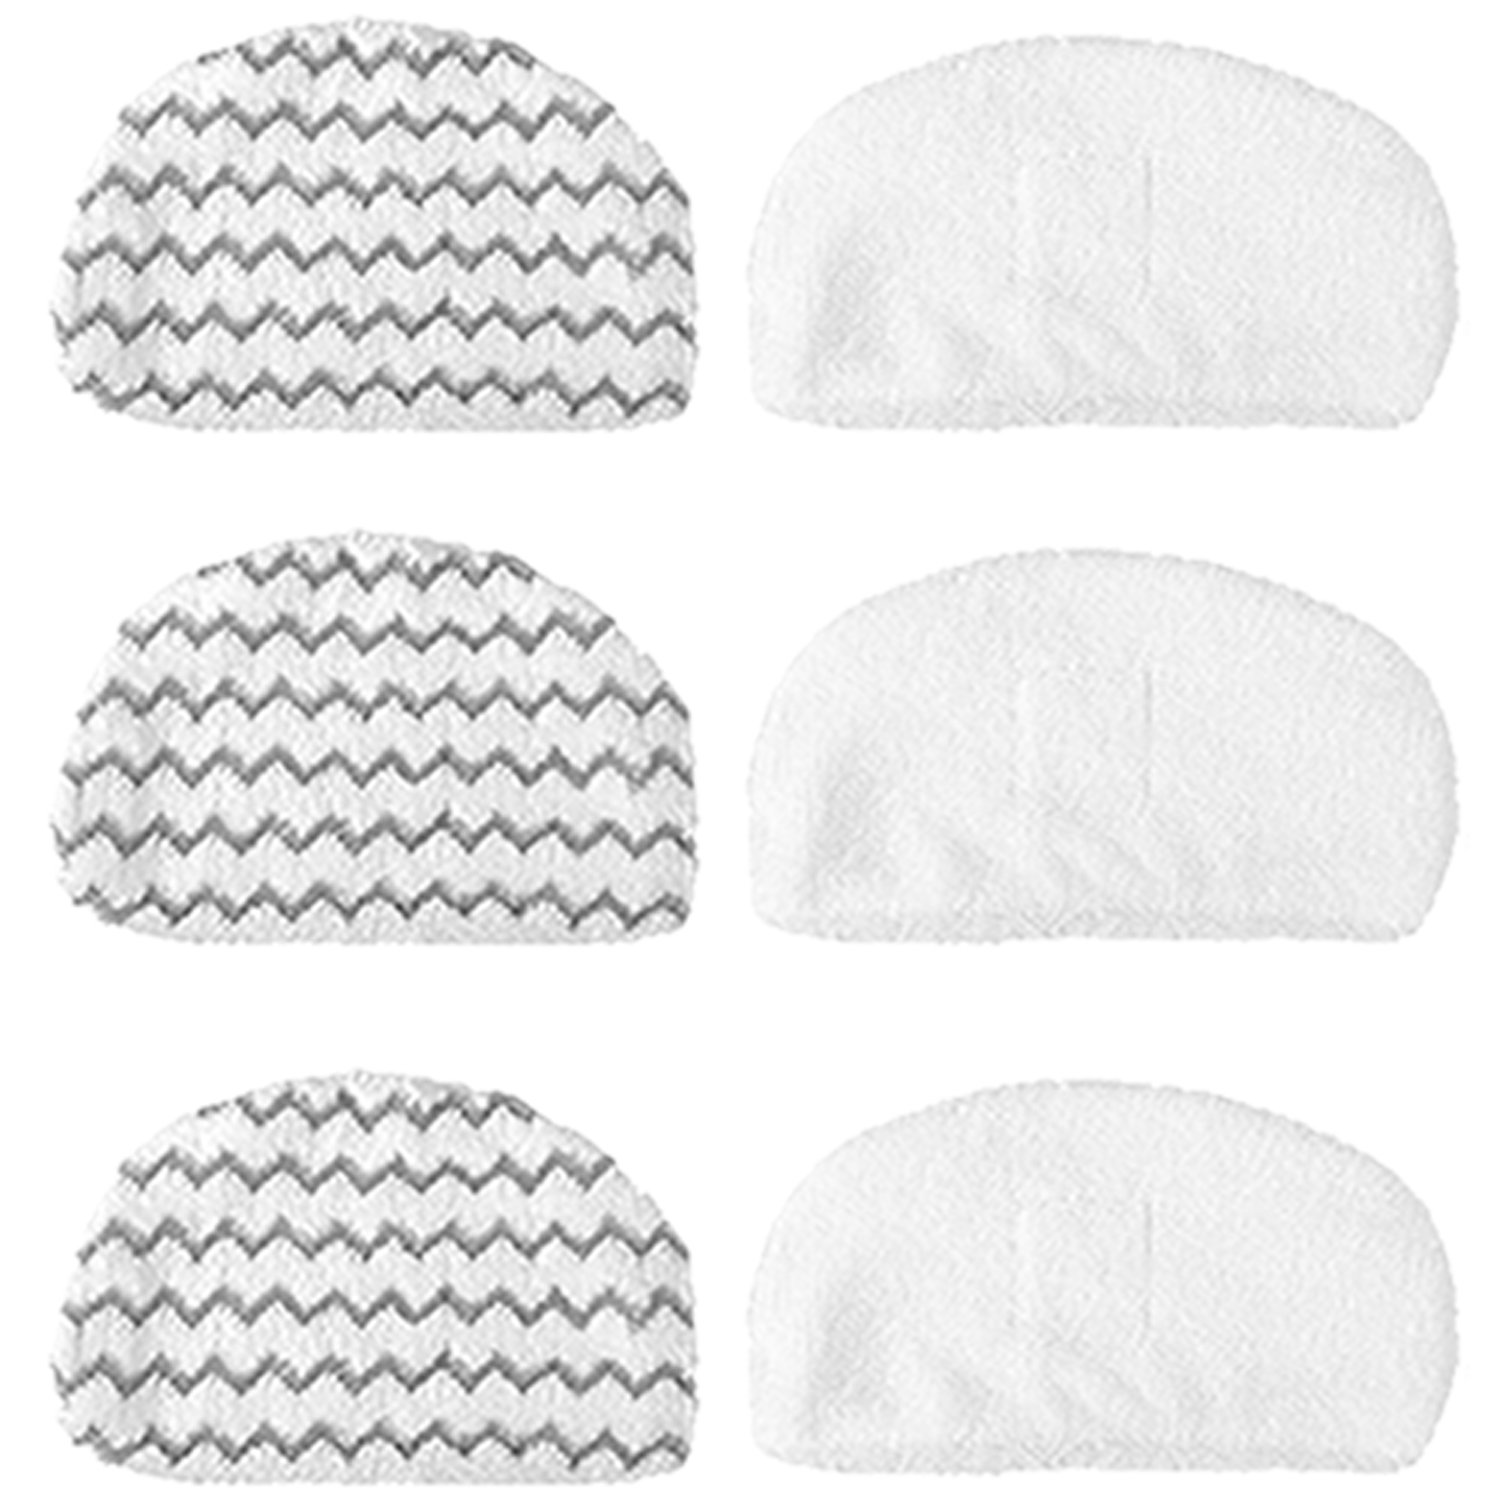 6Pcs Amyehouse Washable Mopping & Scrubbing Pads Replacement for Bissell Powerfresh 1940 1440 1544 Series Steam Mop Model 1544A, 2075A, 1440, 1940W,19404, Deluxe 1806, 1940A, 5938, 19408, 1940Q, 1940W by Amyehouse